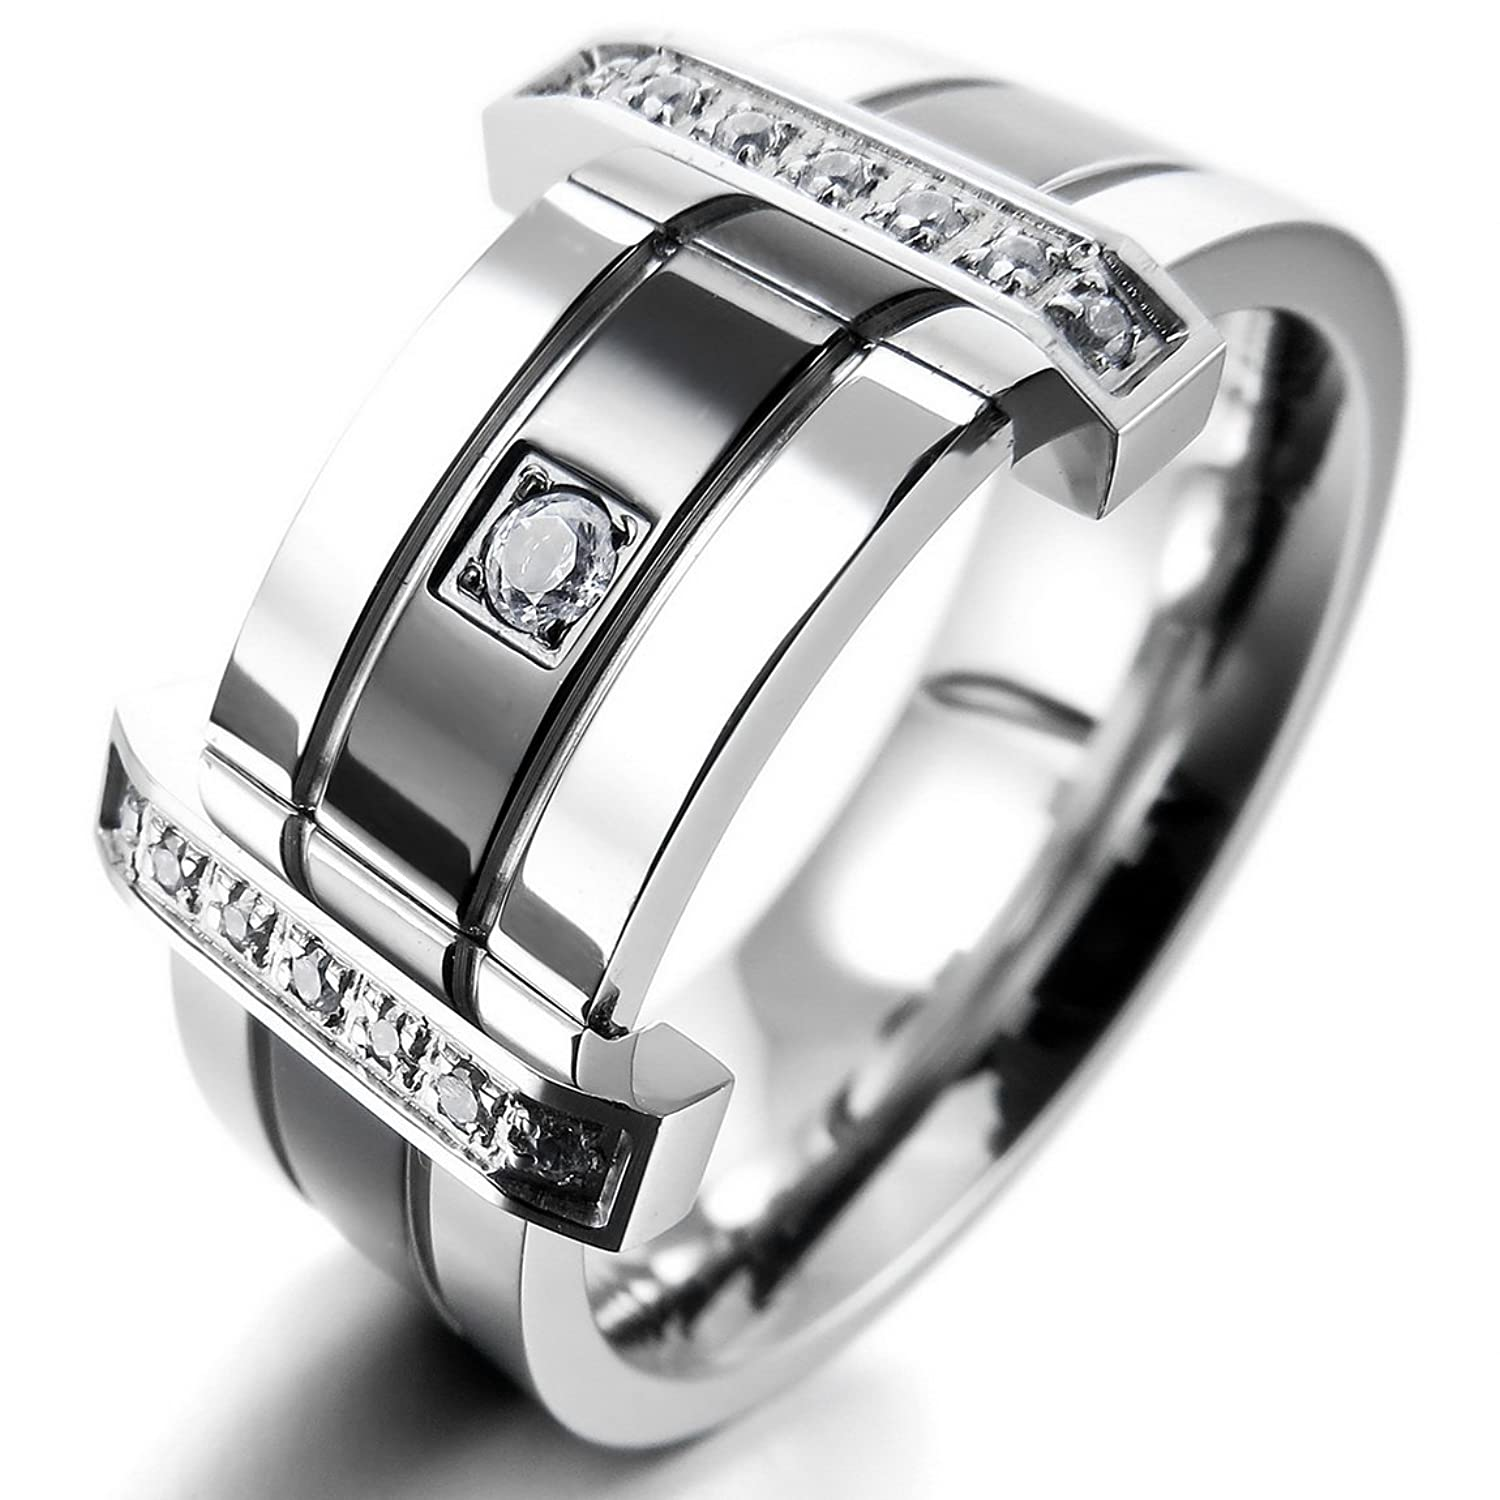 wedding cre p steel band htm brilliant ring size created cut rings stainless diamond engagement